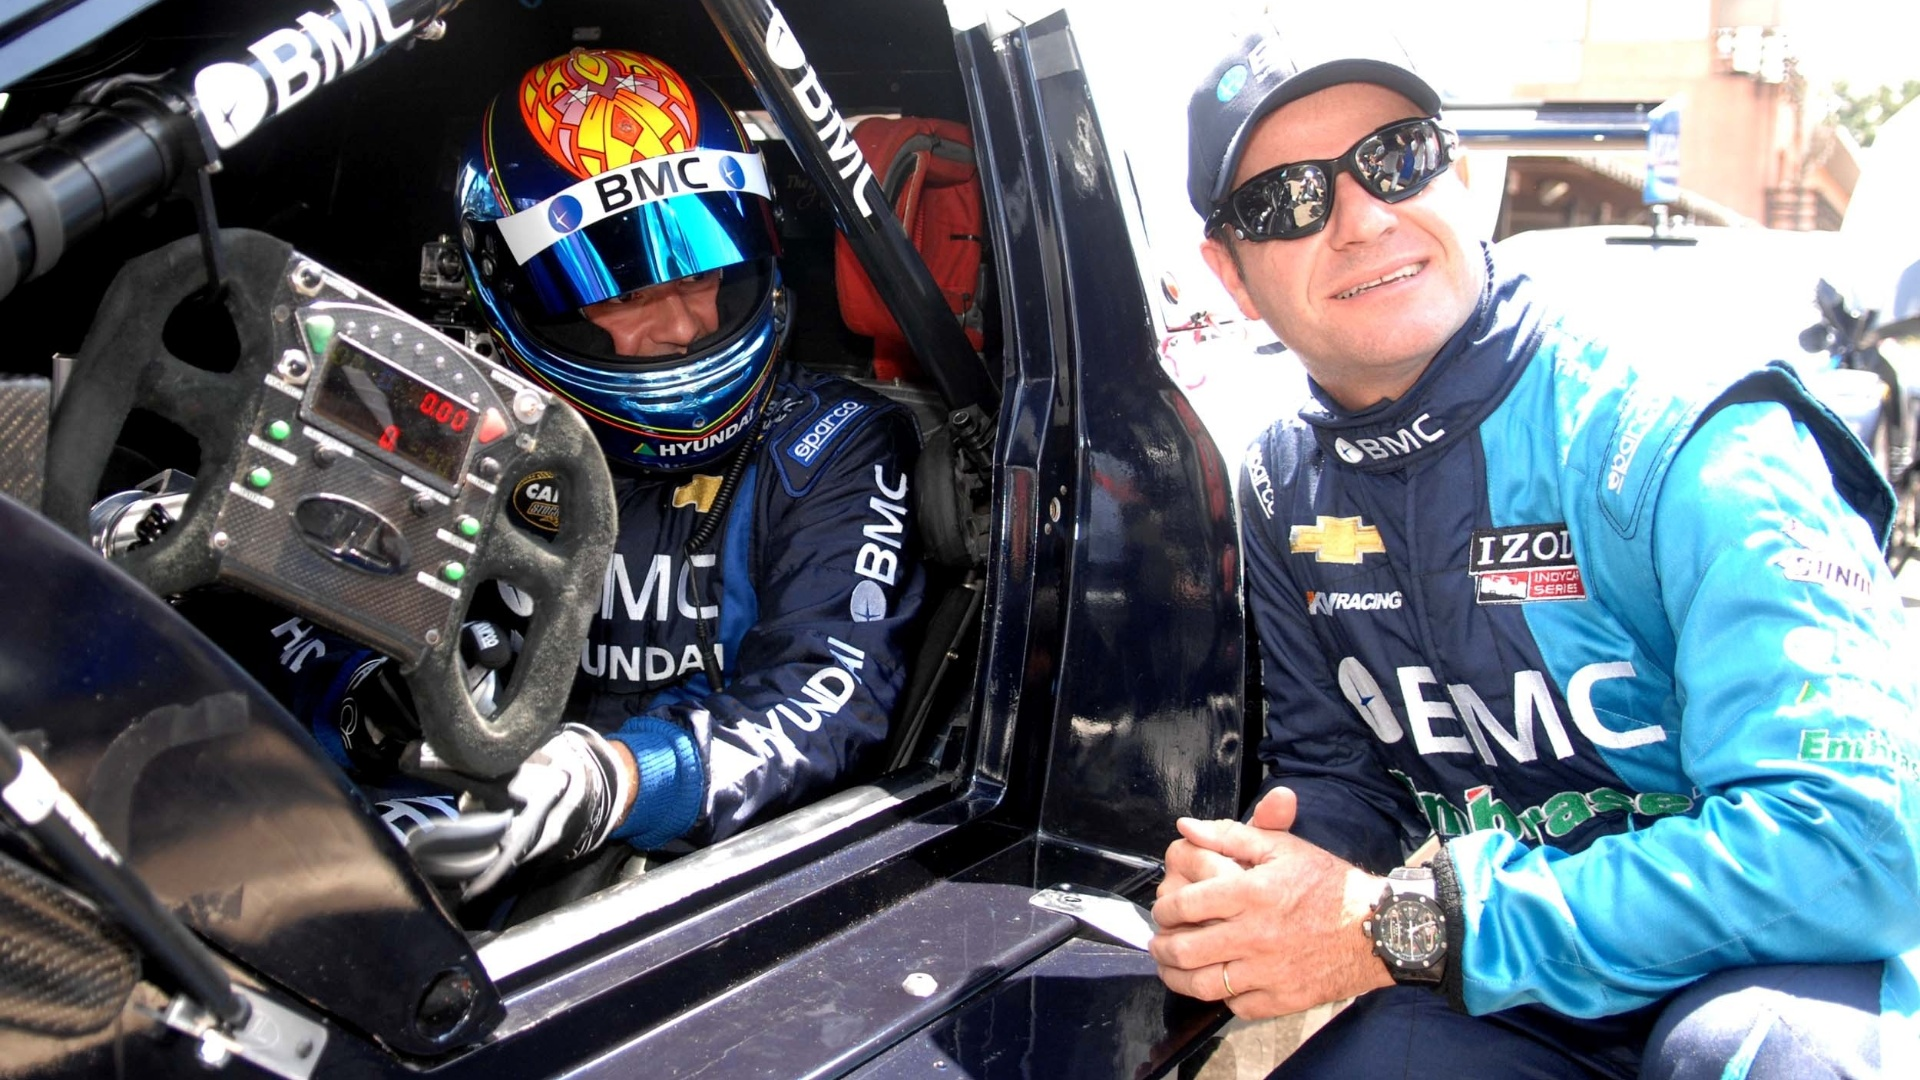 Rubens Barrichello conversa com Tuka Rocha, que corre na Stock Car pela BMC Racing